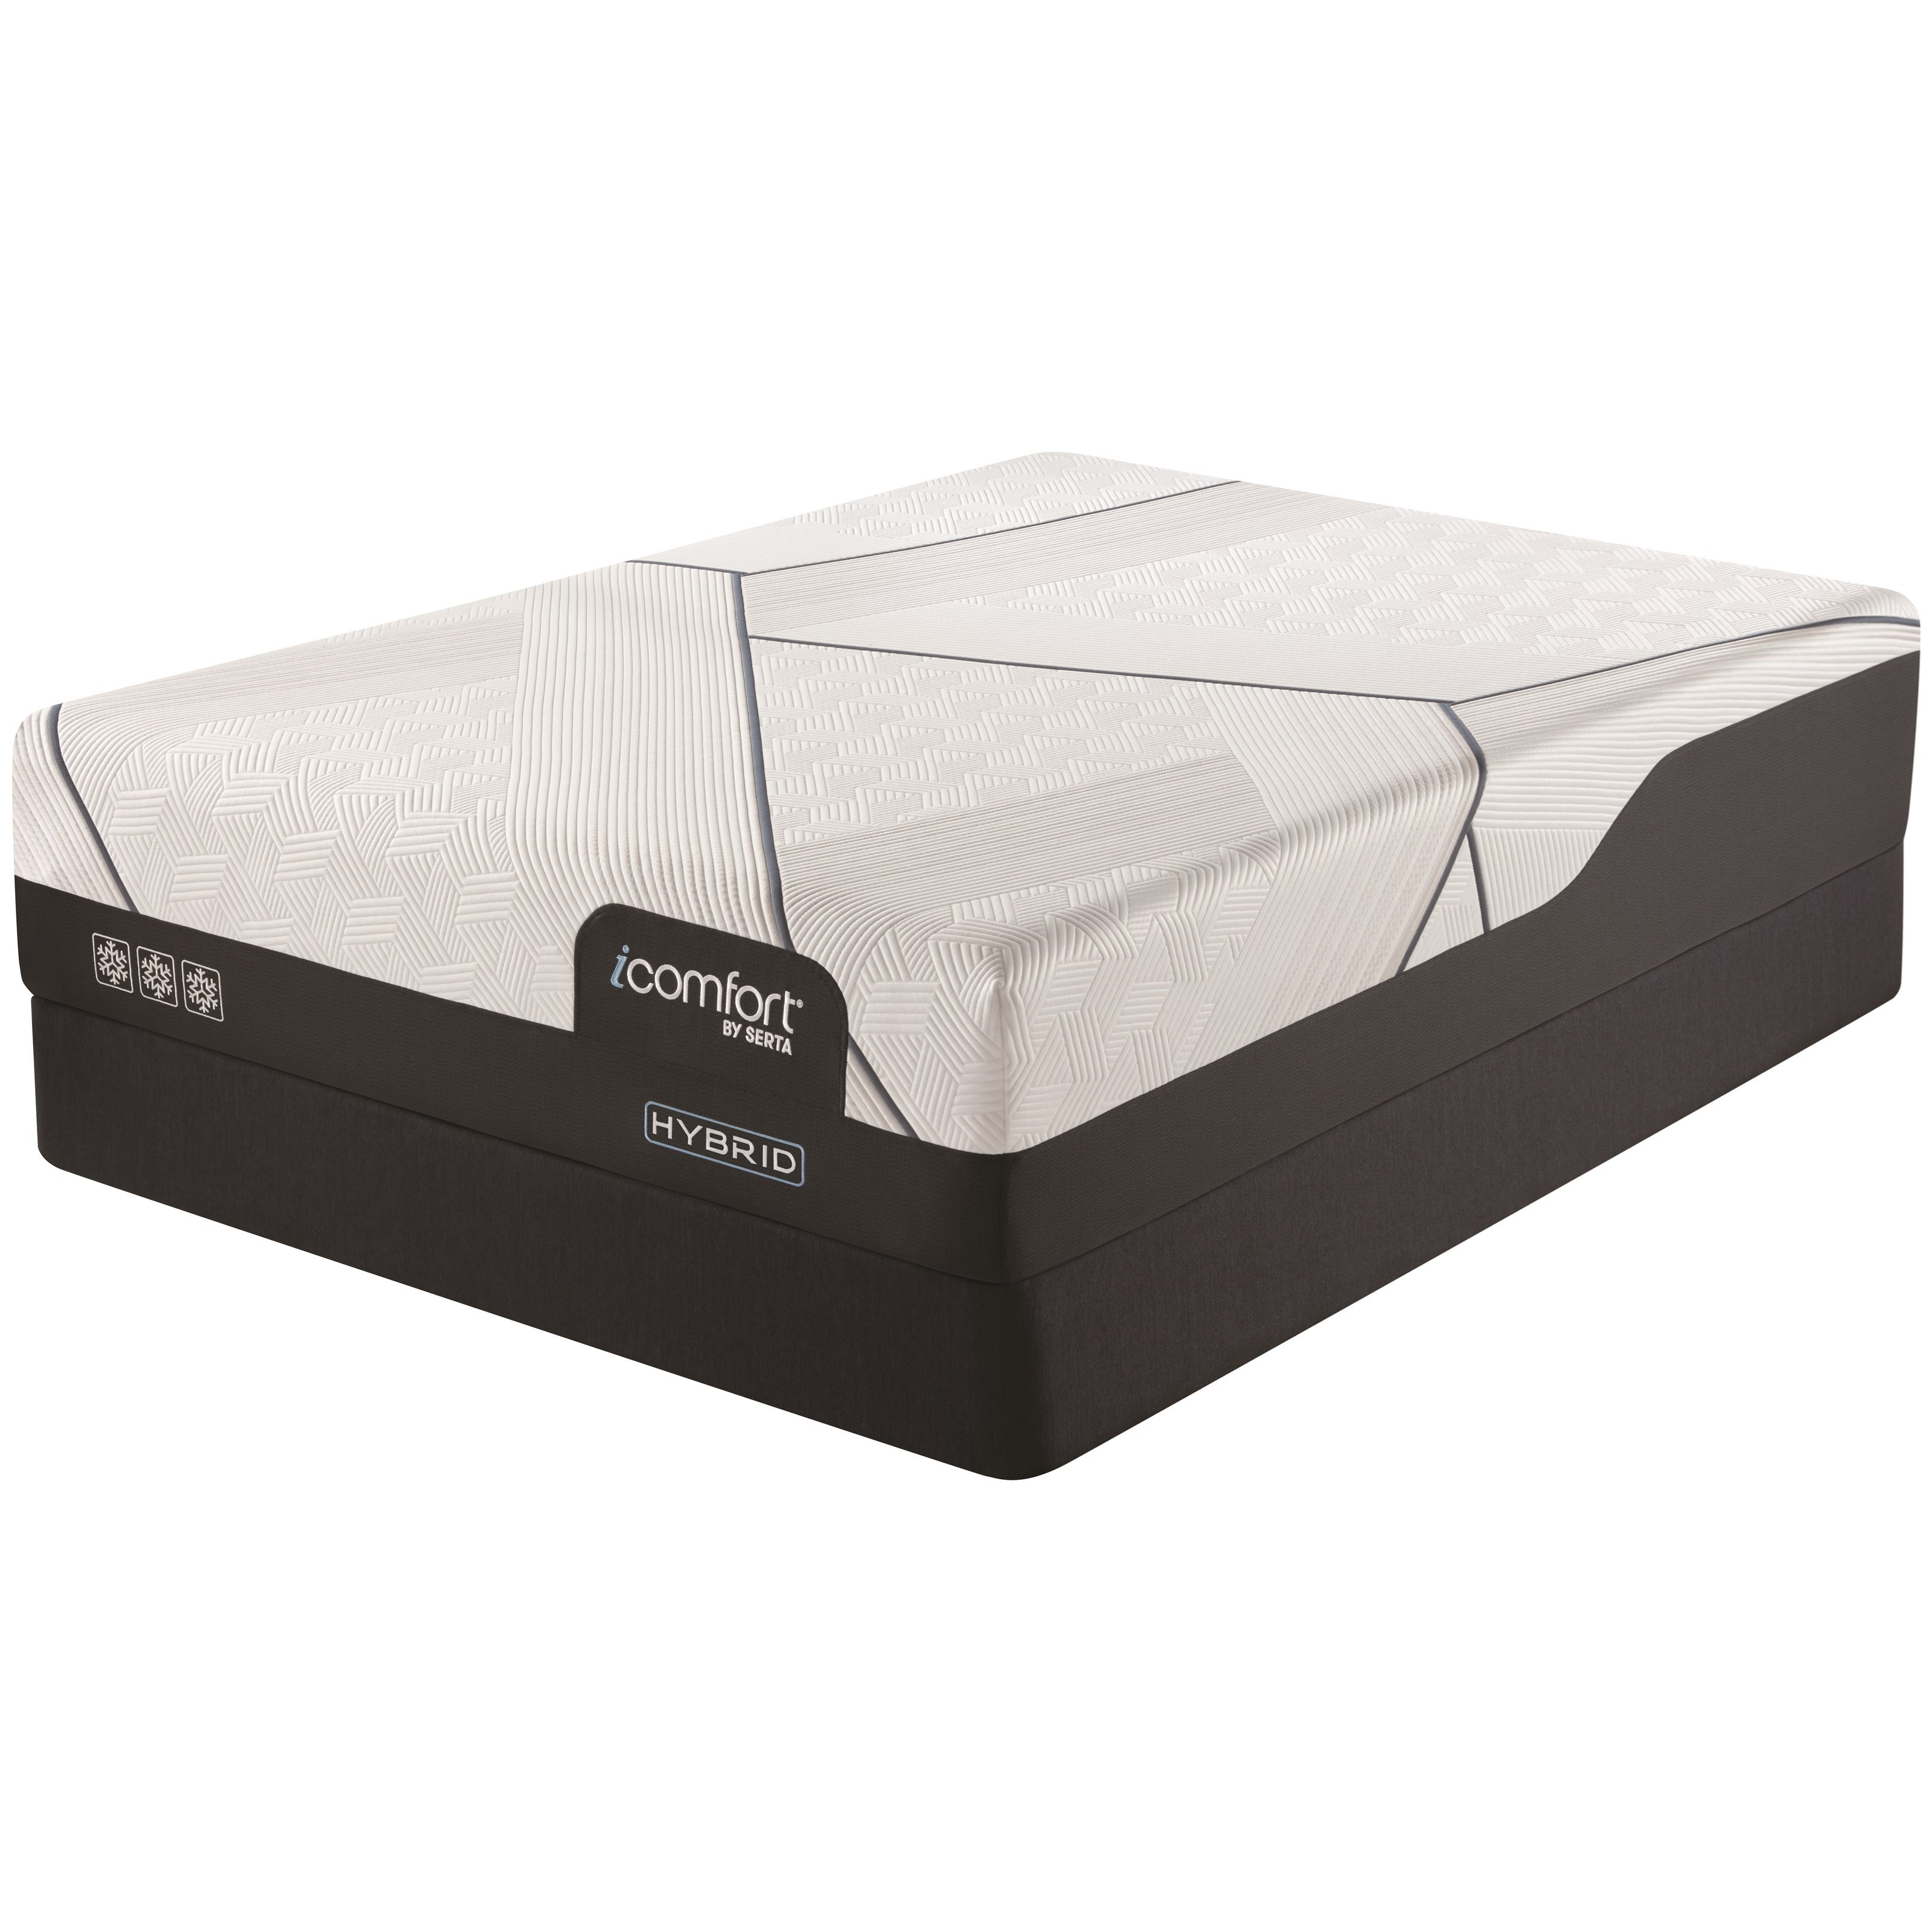 "CF3000 Hybrid Medium Twin XL 13"" Medium Hybrid Mattress Set by Serta at Darvin Furniture"